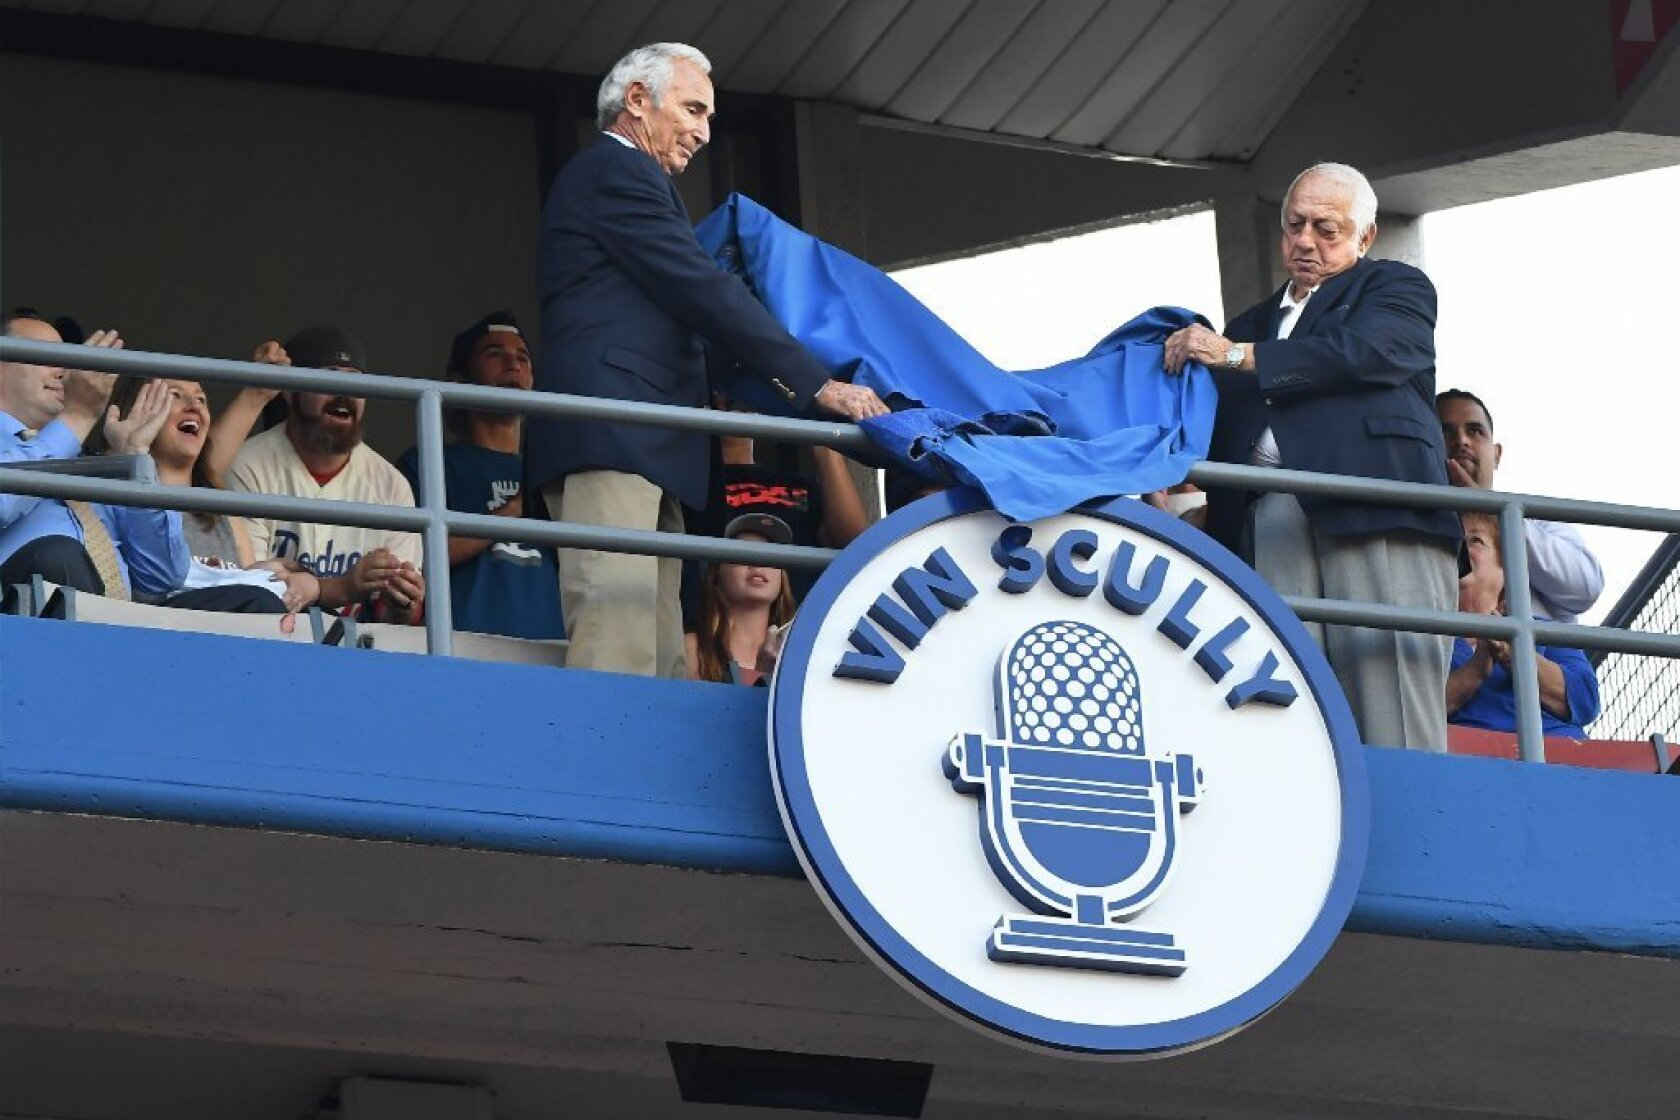 Vin Scully has microphone retired at Dodger Stadium ceremony - Los ...